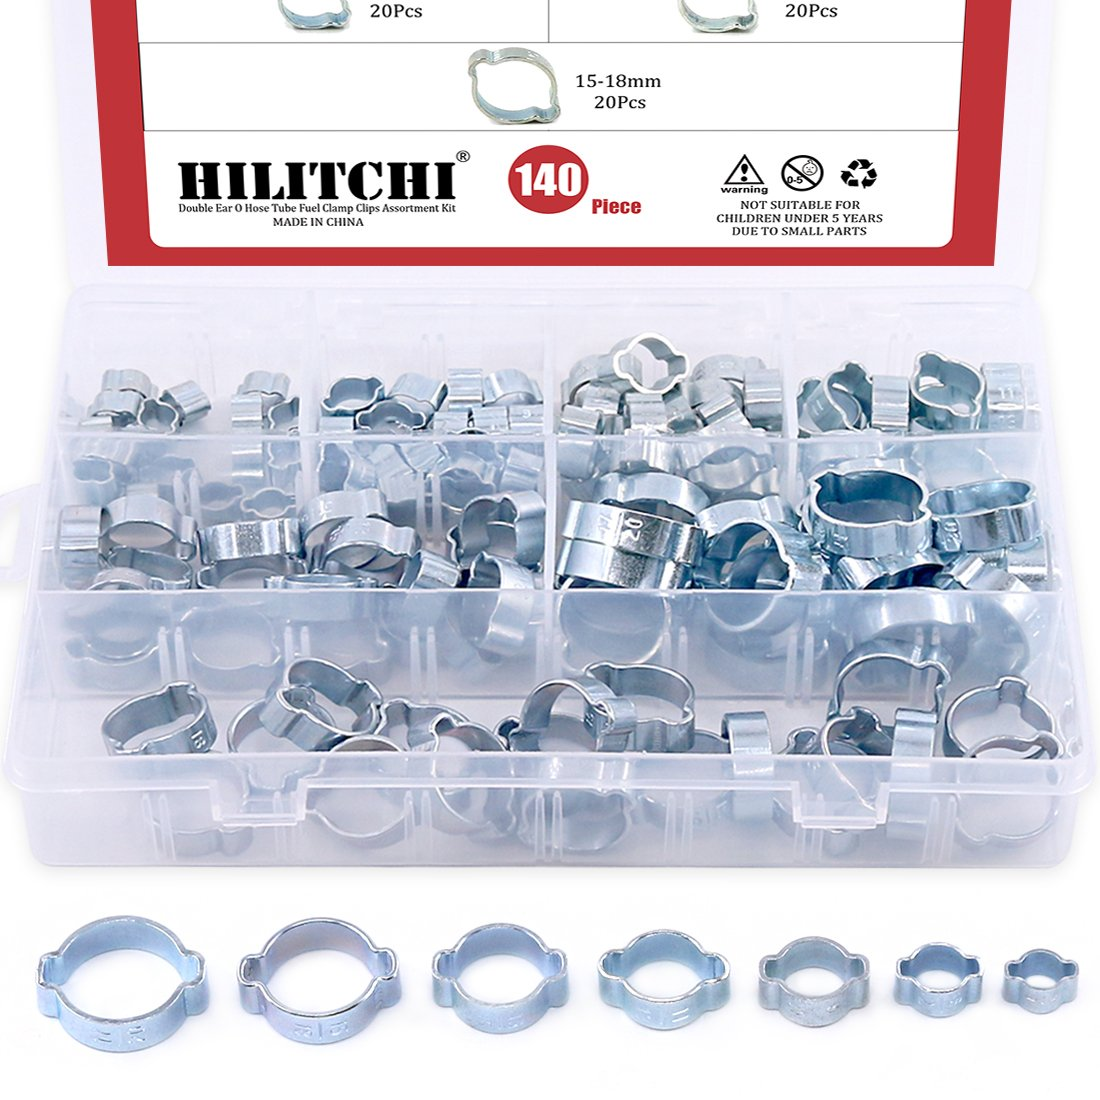 Hilitchi 140-Pcs Zinc Plated Double Ear O Clips Hose Tube Fuel Clamp Assortment Kit - 7-Size